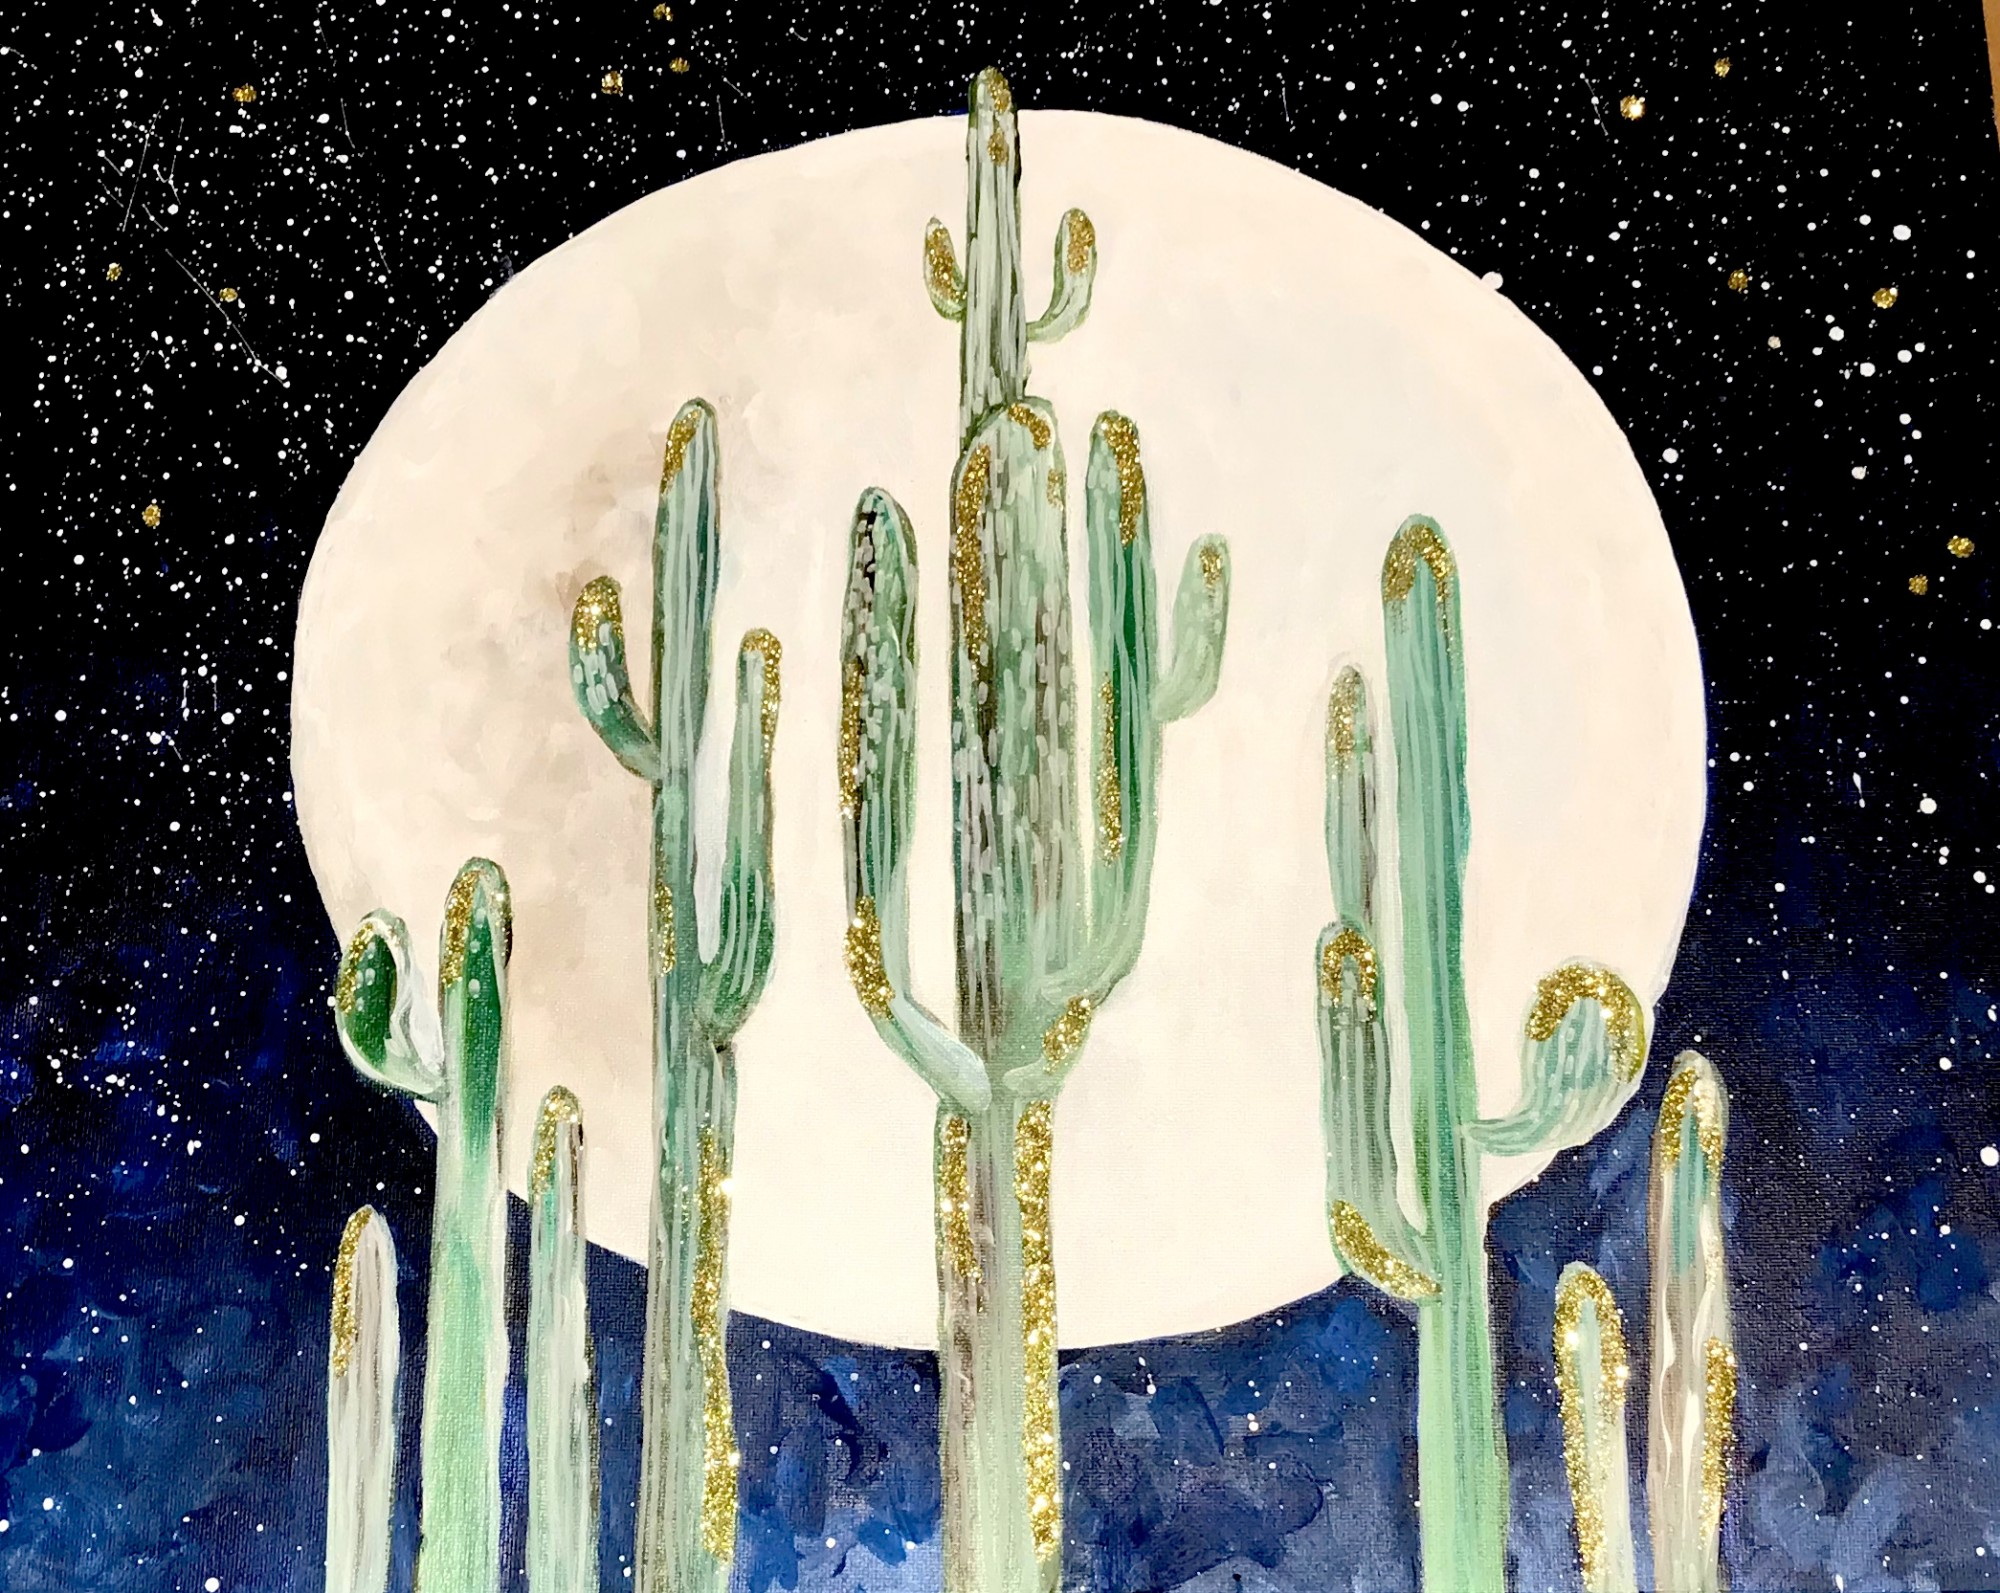 Cactus Moon - Downtown Grand Rapids